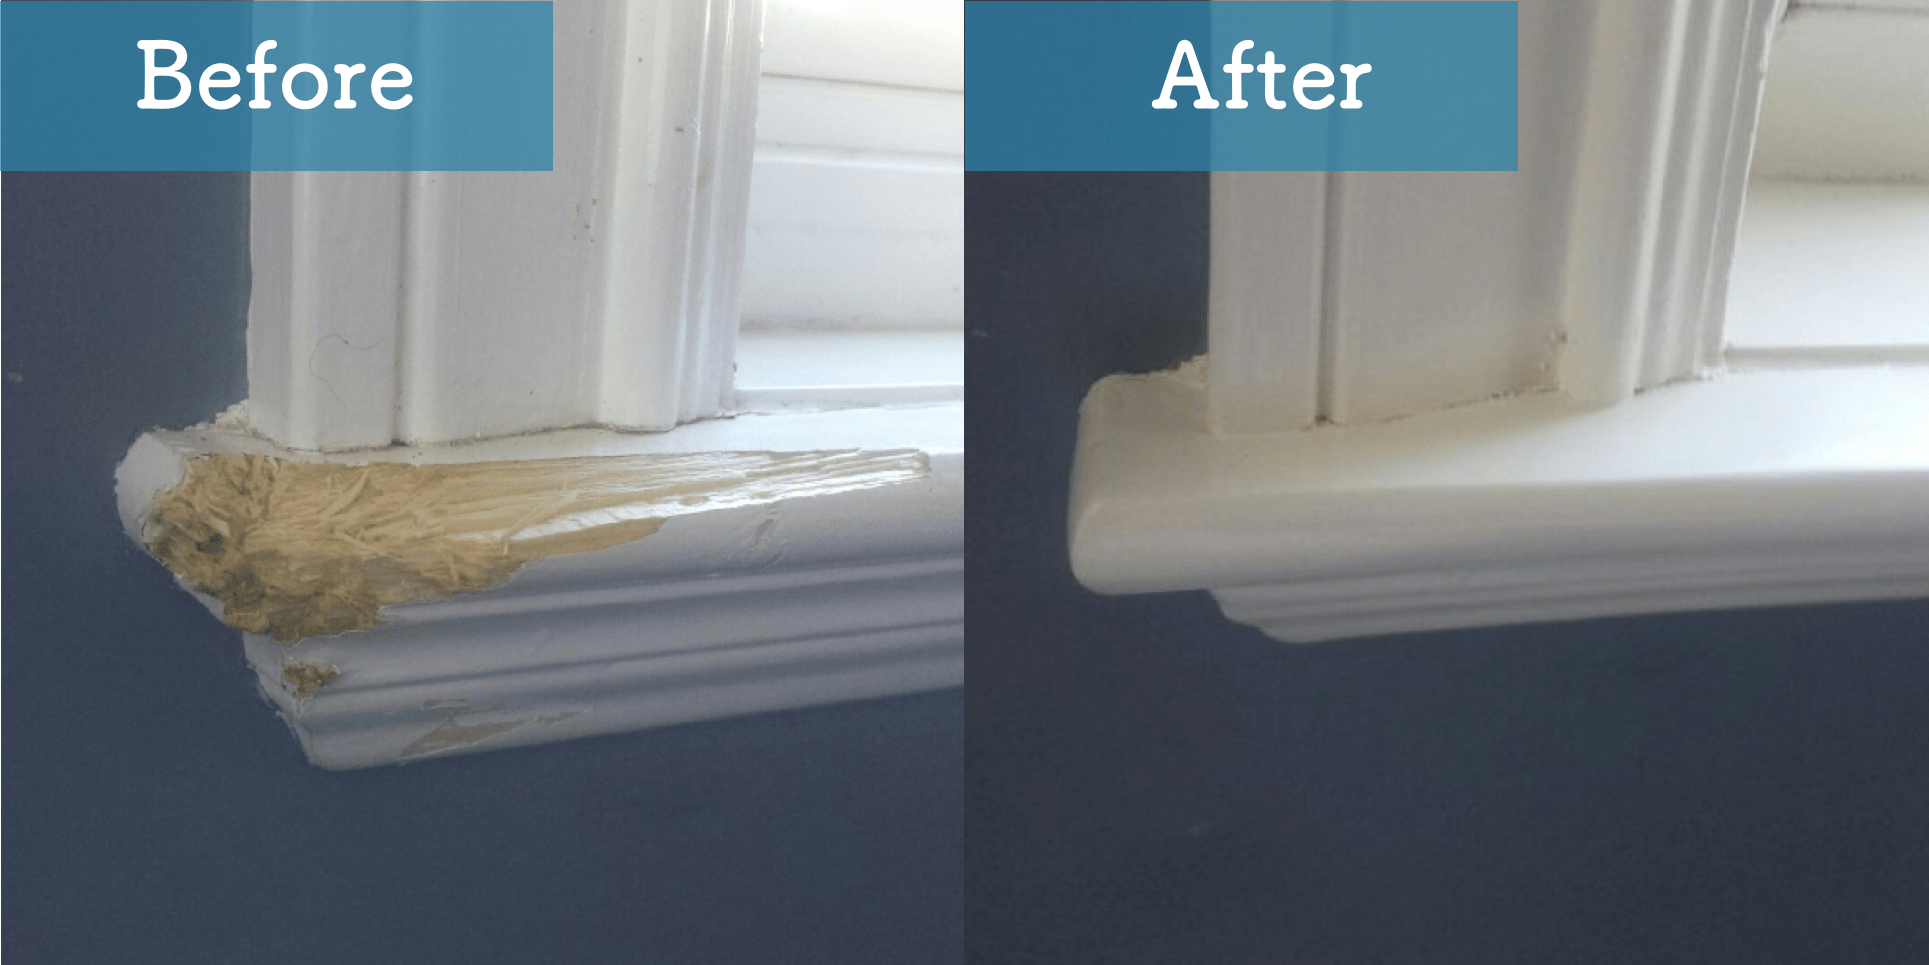 worn wooden window sill before and after image